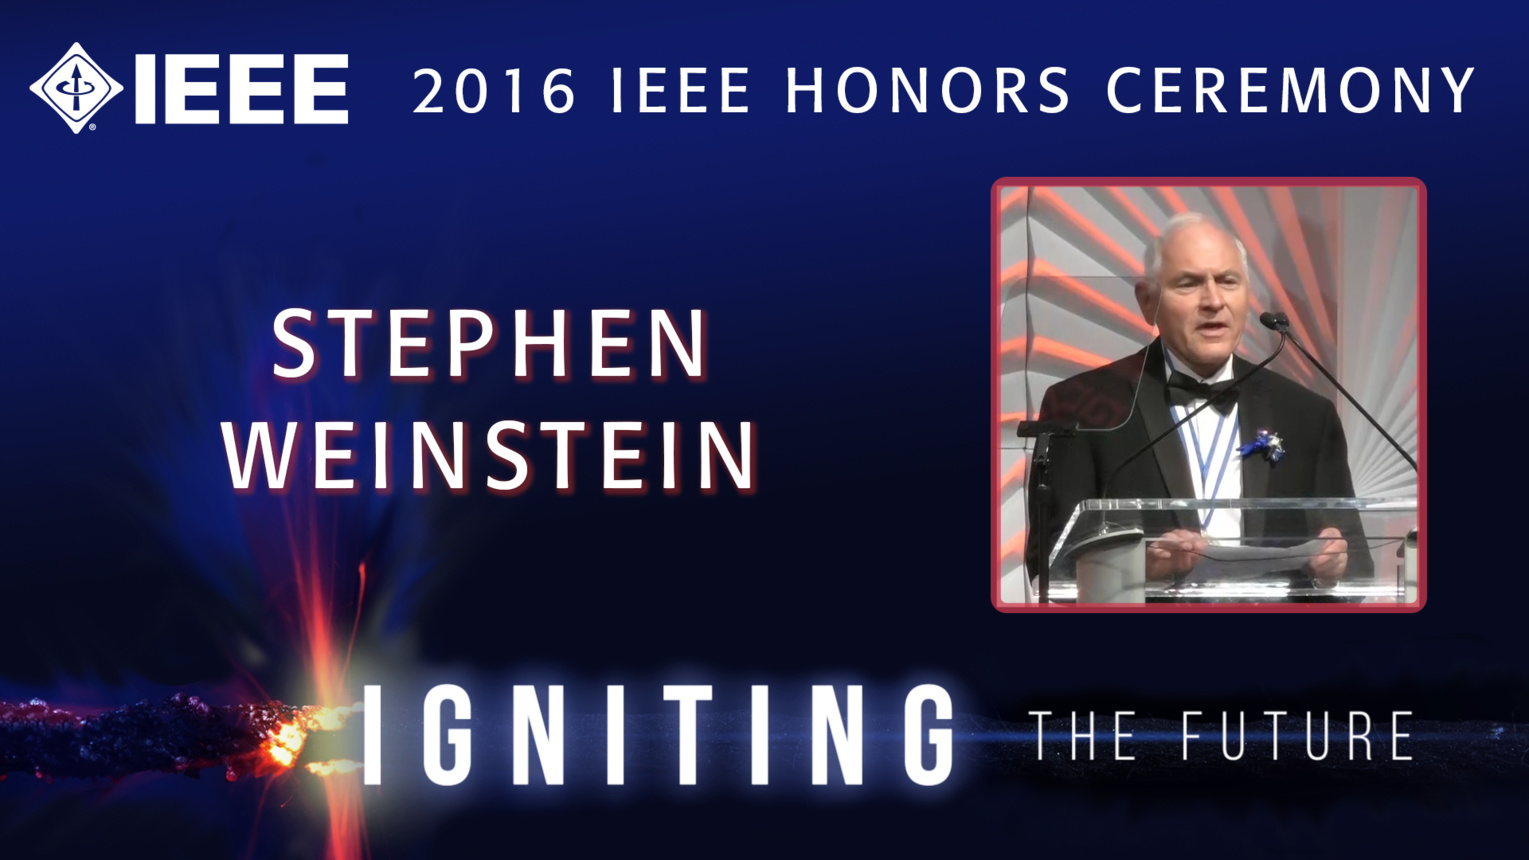 Stephen Weinstein accepts the IEEE Richard M. Emberson Award - Honors Ceremony 2016